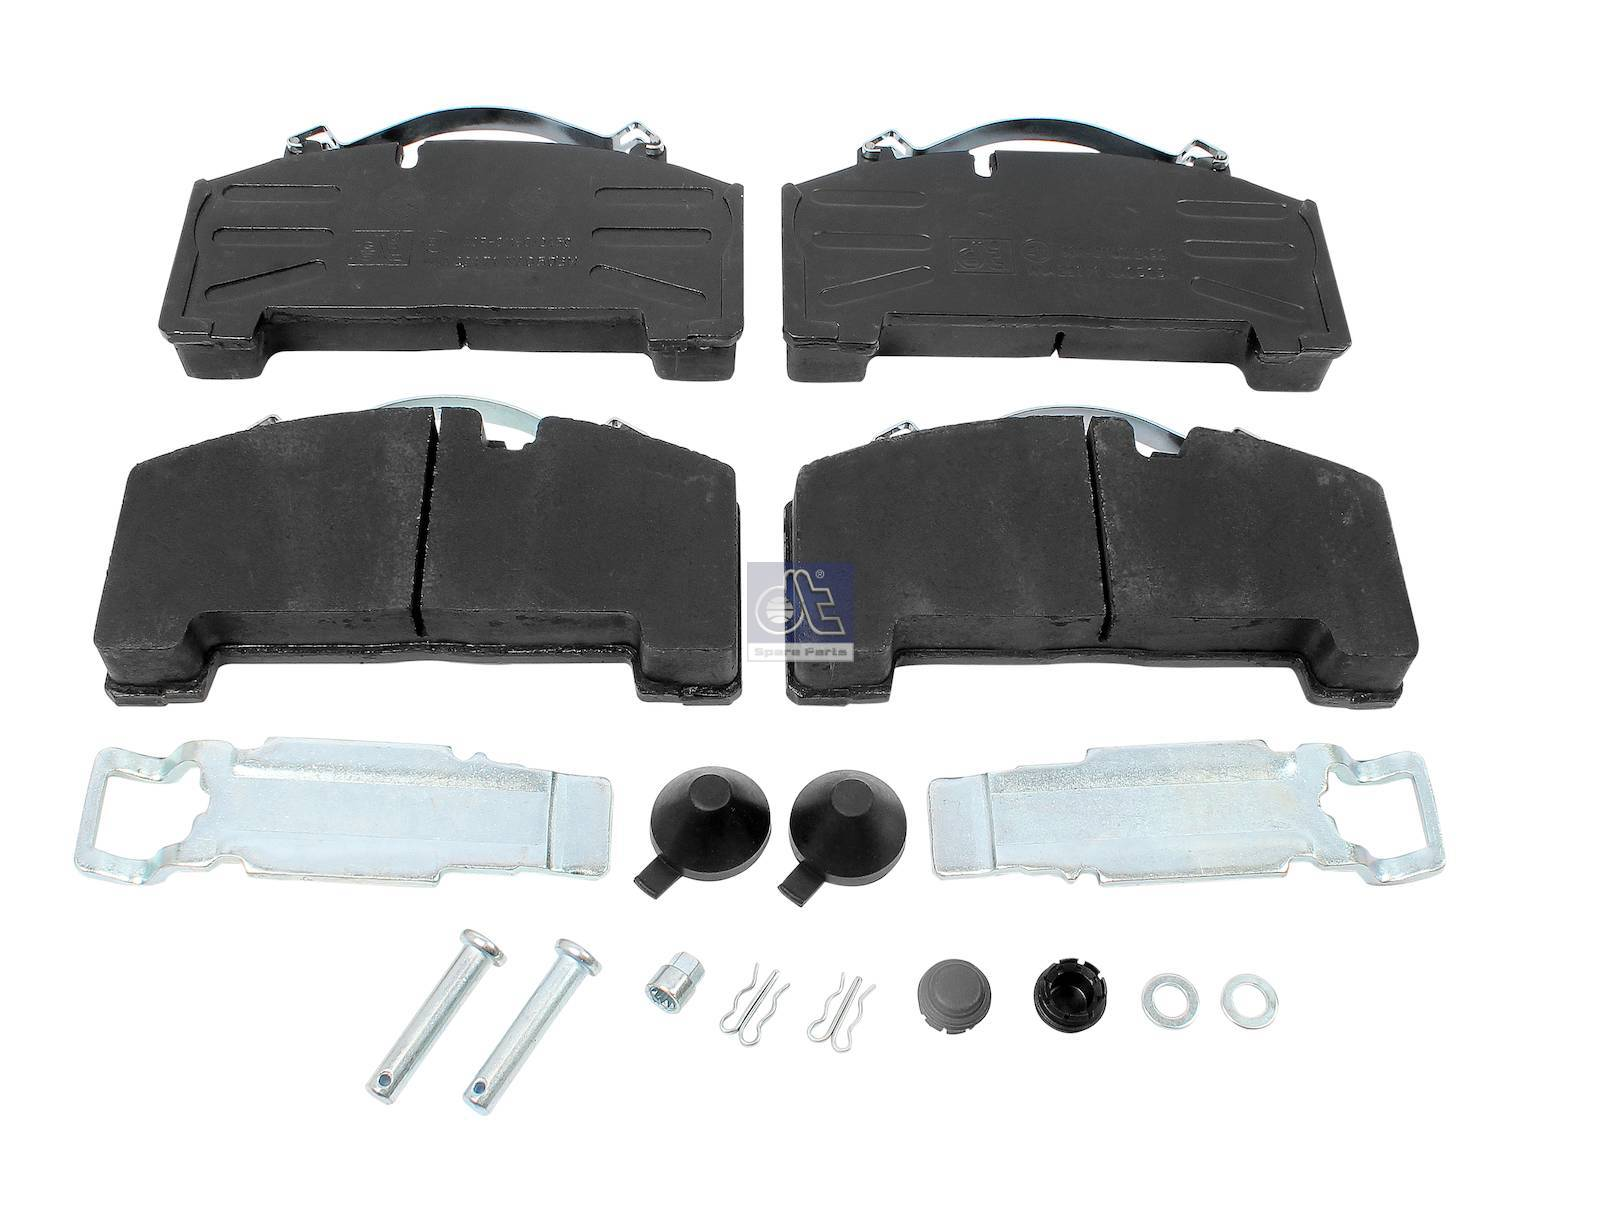 Disc brake pad kit, with accessory kit